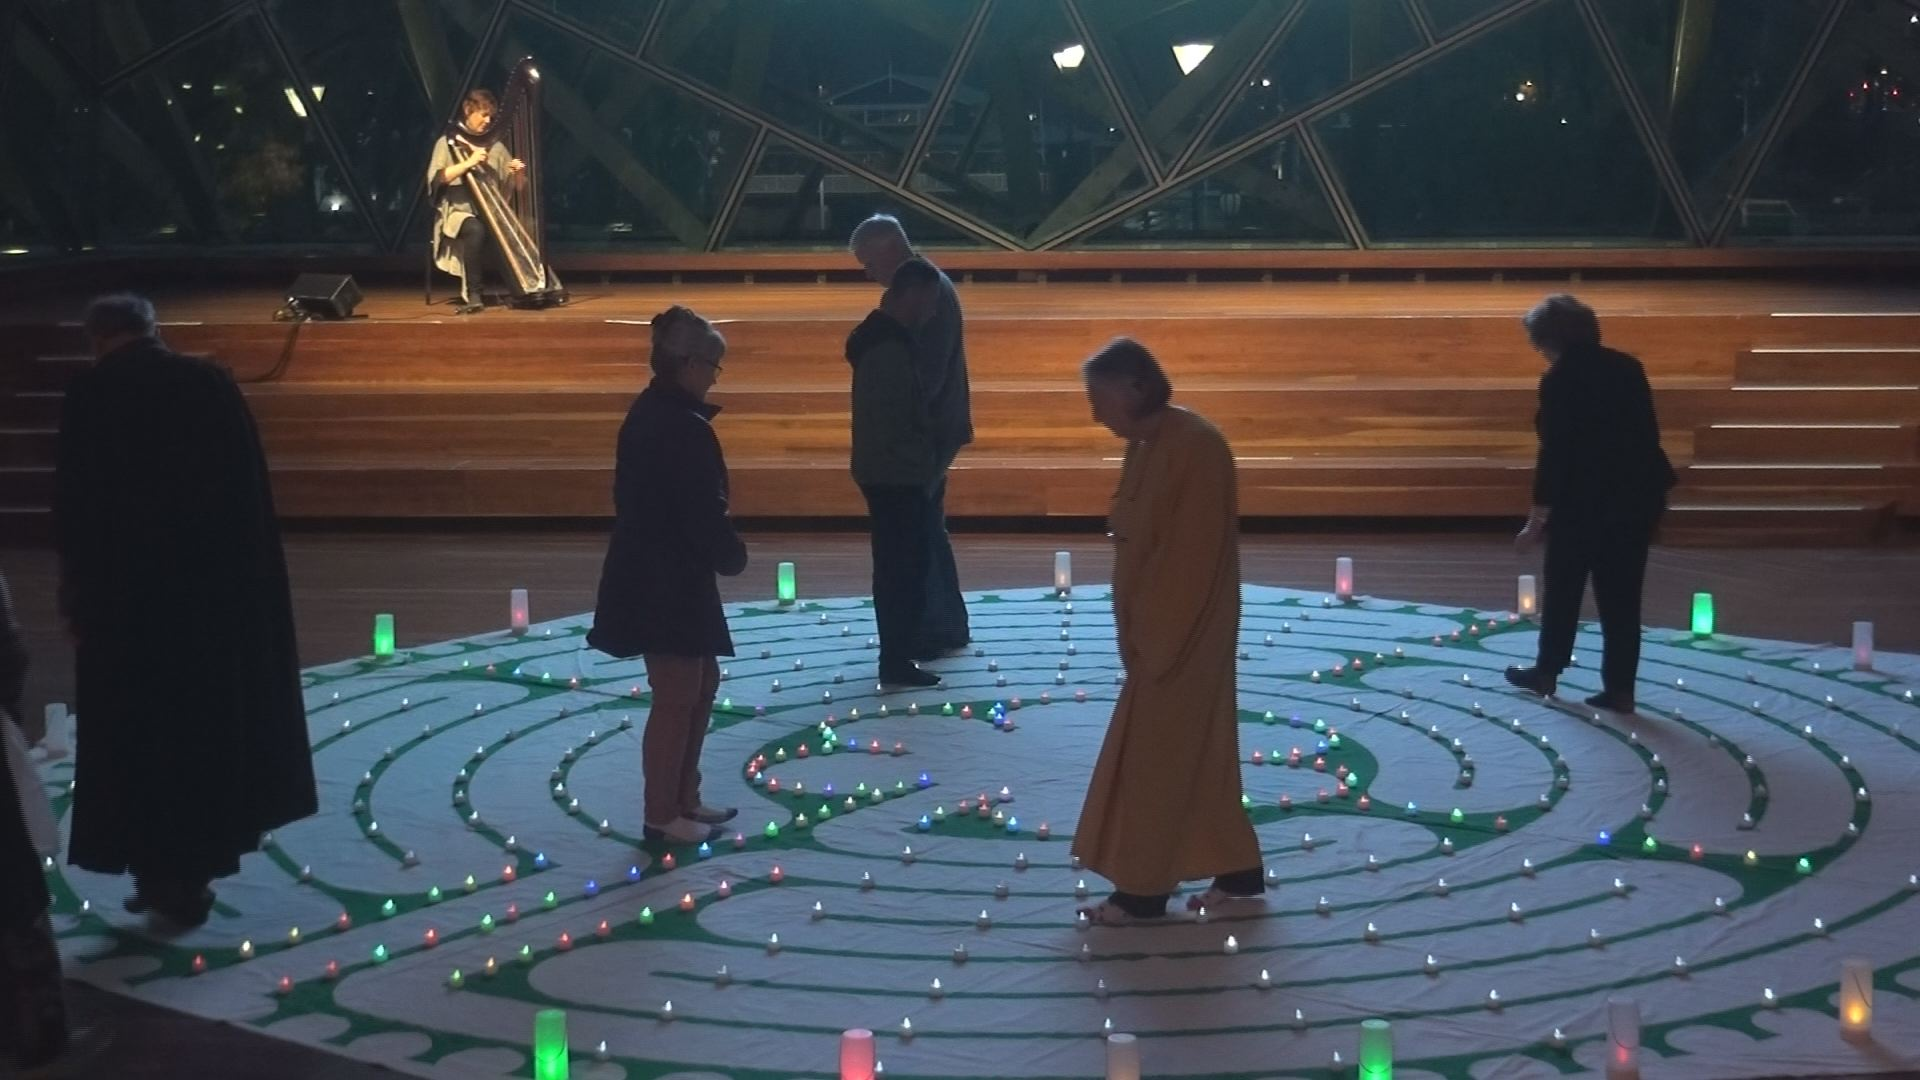 United Nations International Day of Peace – Walking Together for Inner and Outer Peace on the timeless path of the labyrinth